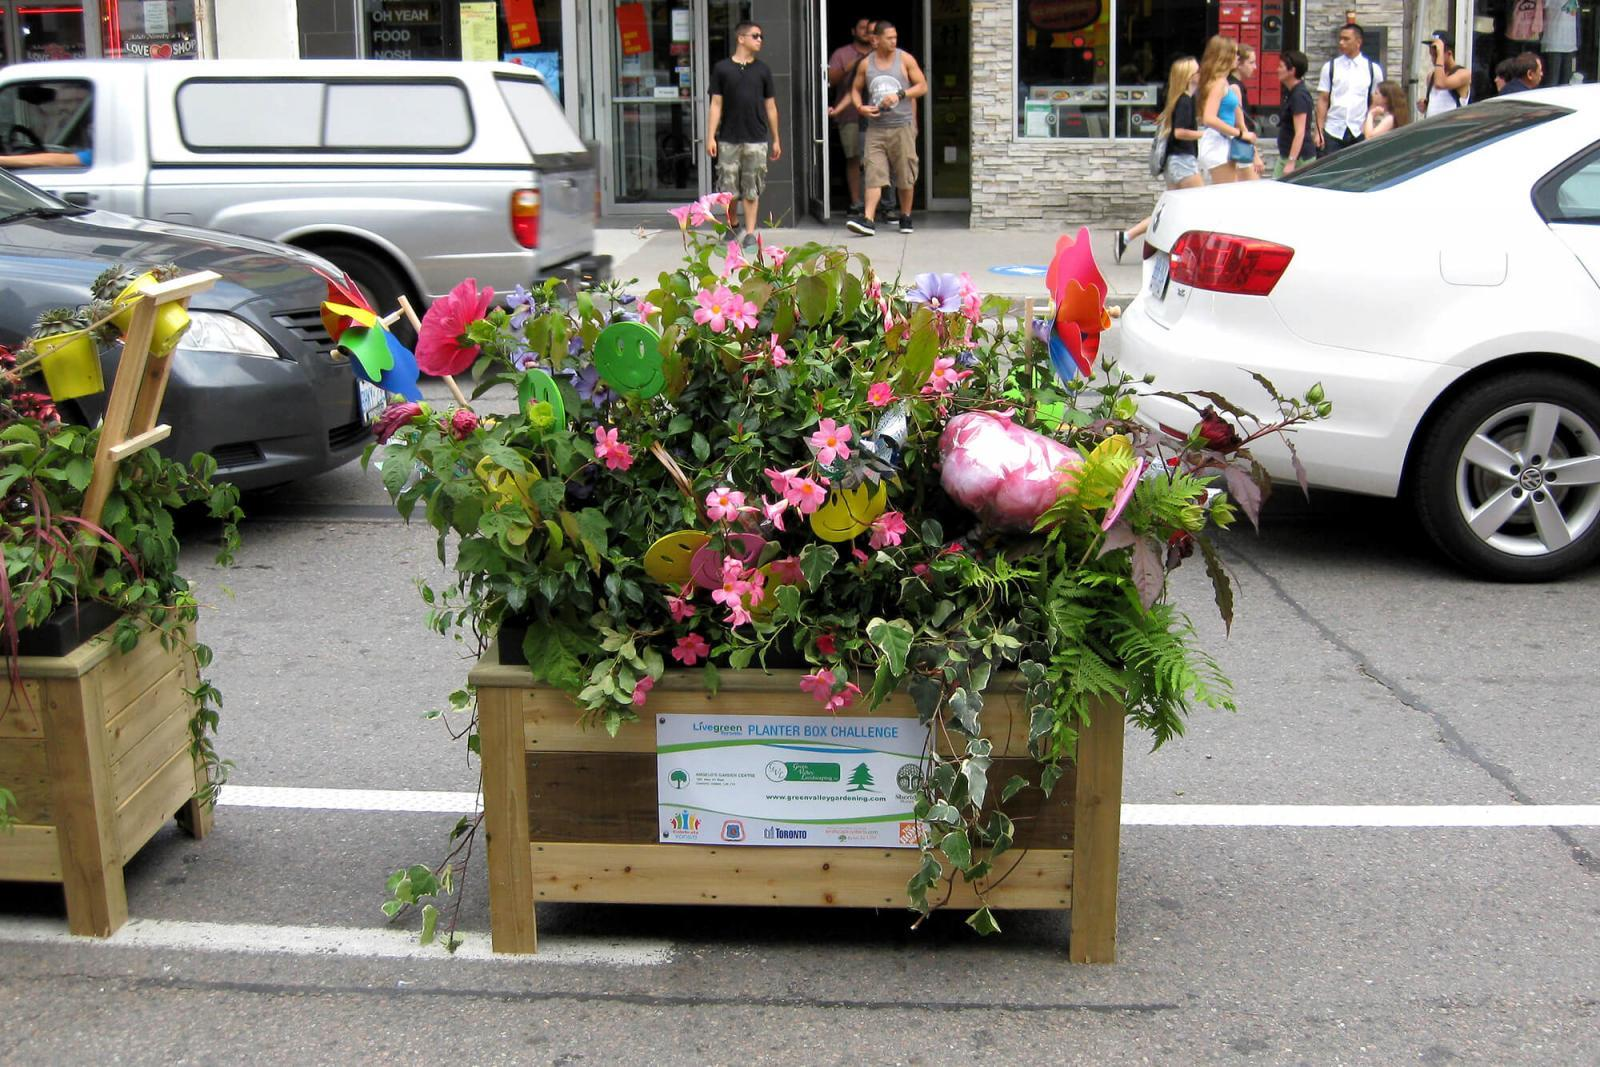 LO members show off talent at Planter Box event